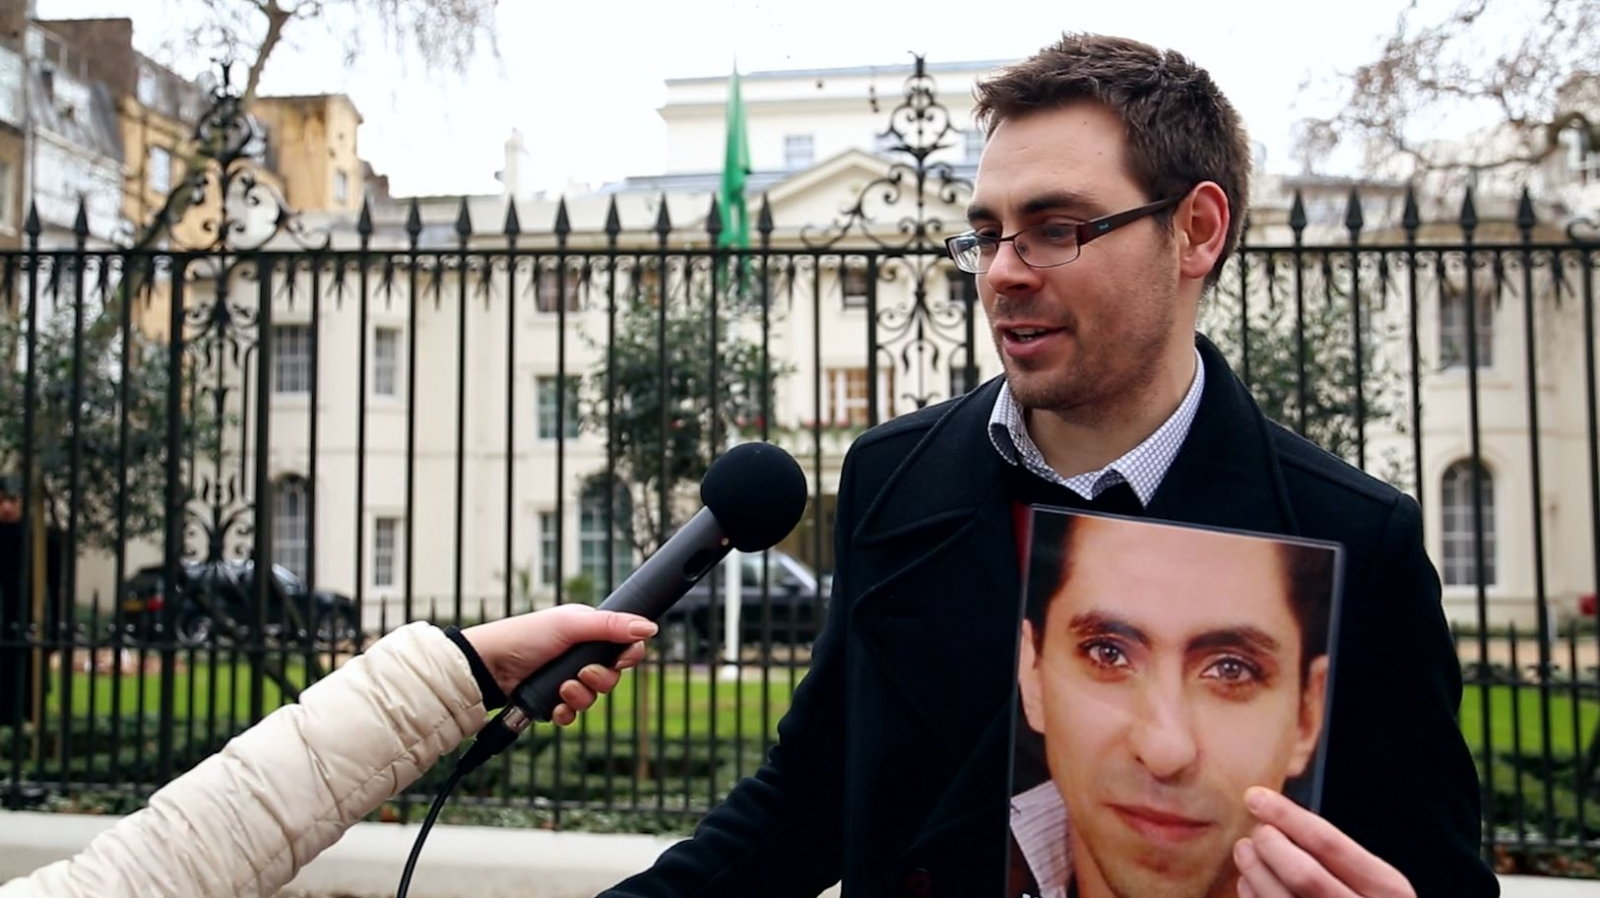 Saudi Arabia Raif Badawi's flogging: Corporal punishments are 'designed to scare people'